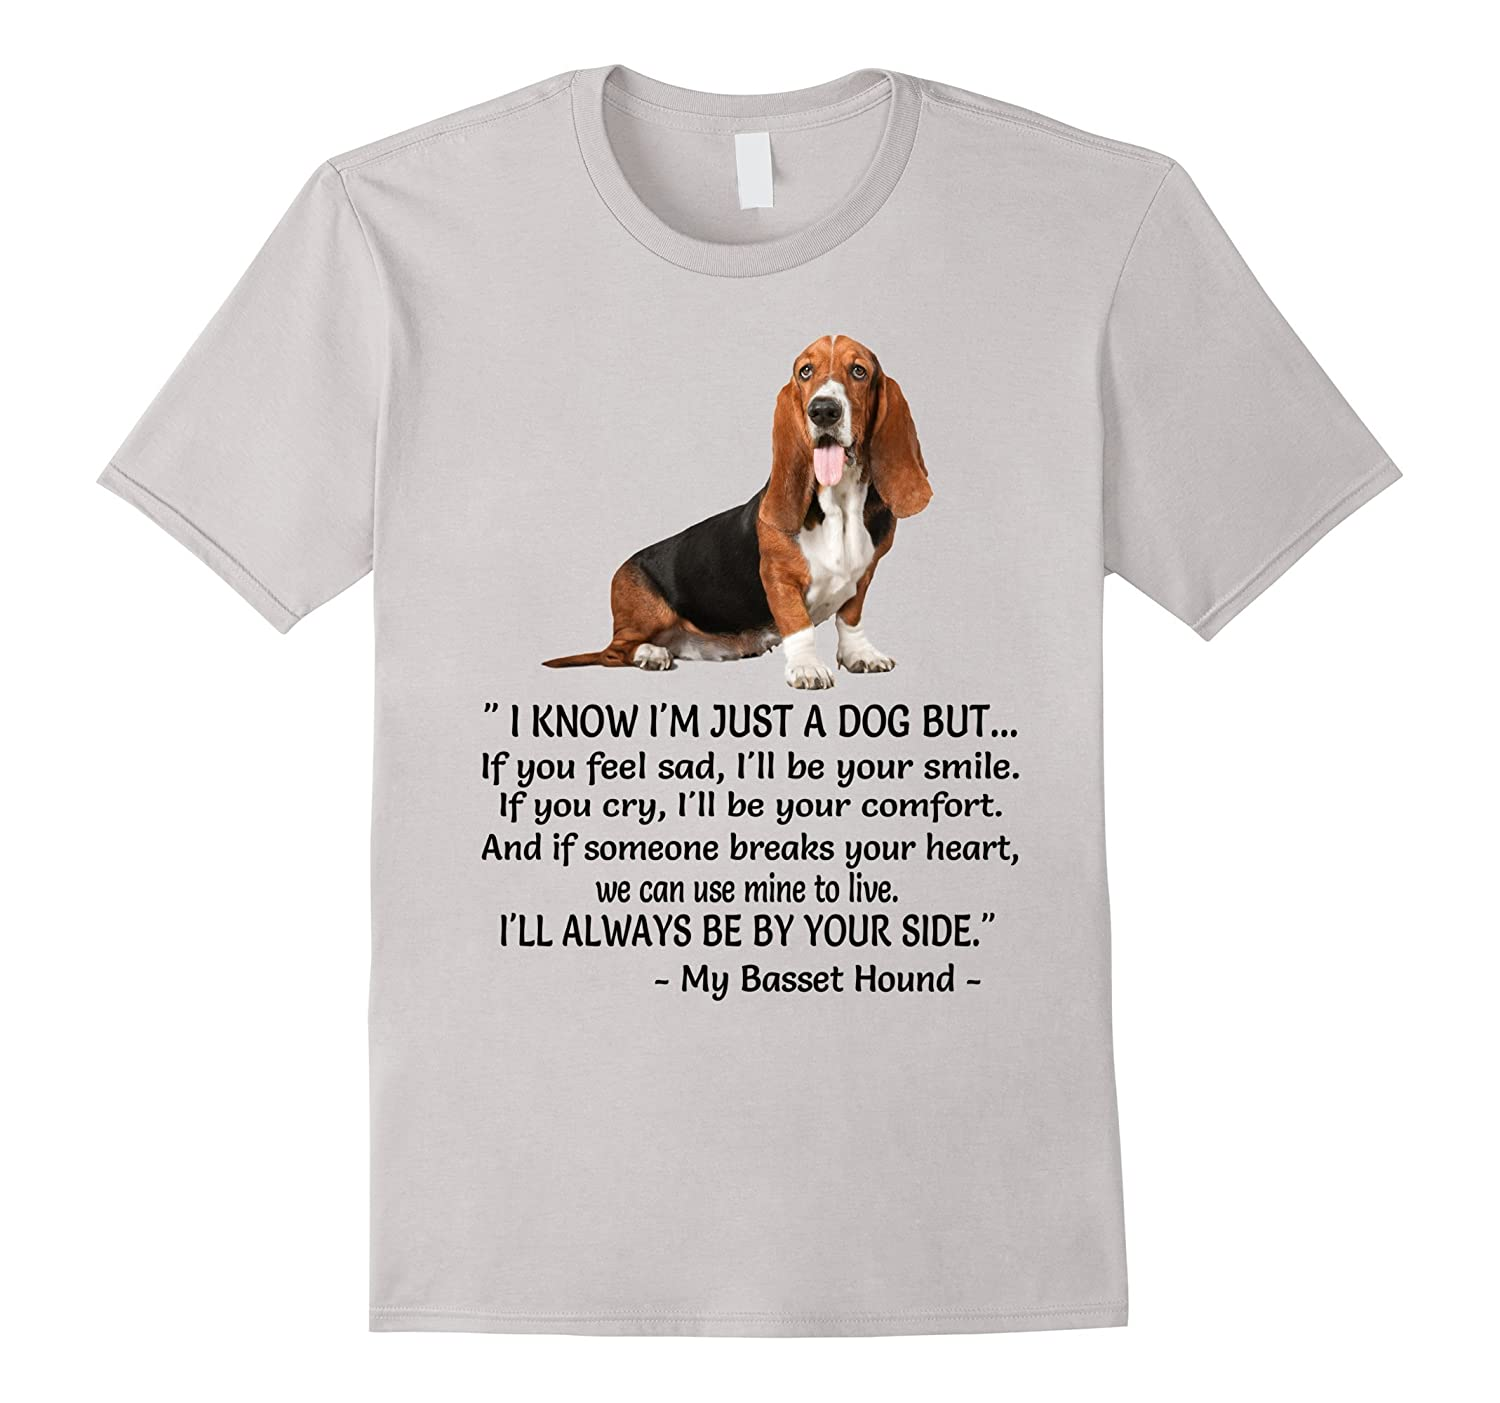 Basset hound Diamonds Tshirt-TH - TEEHELEN